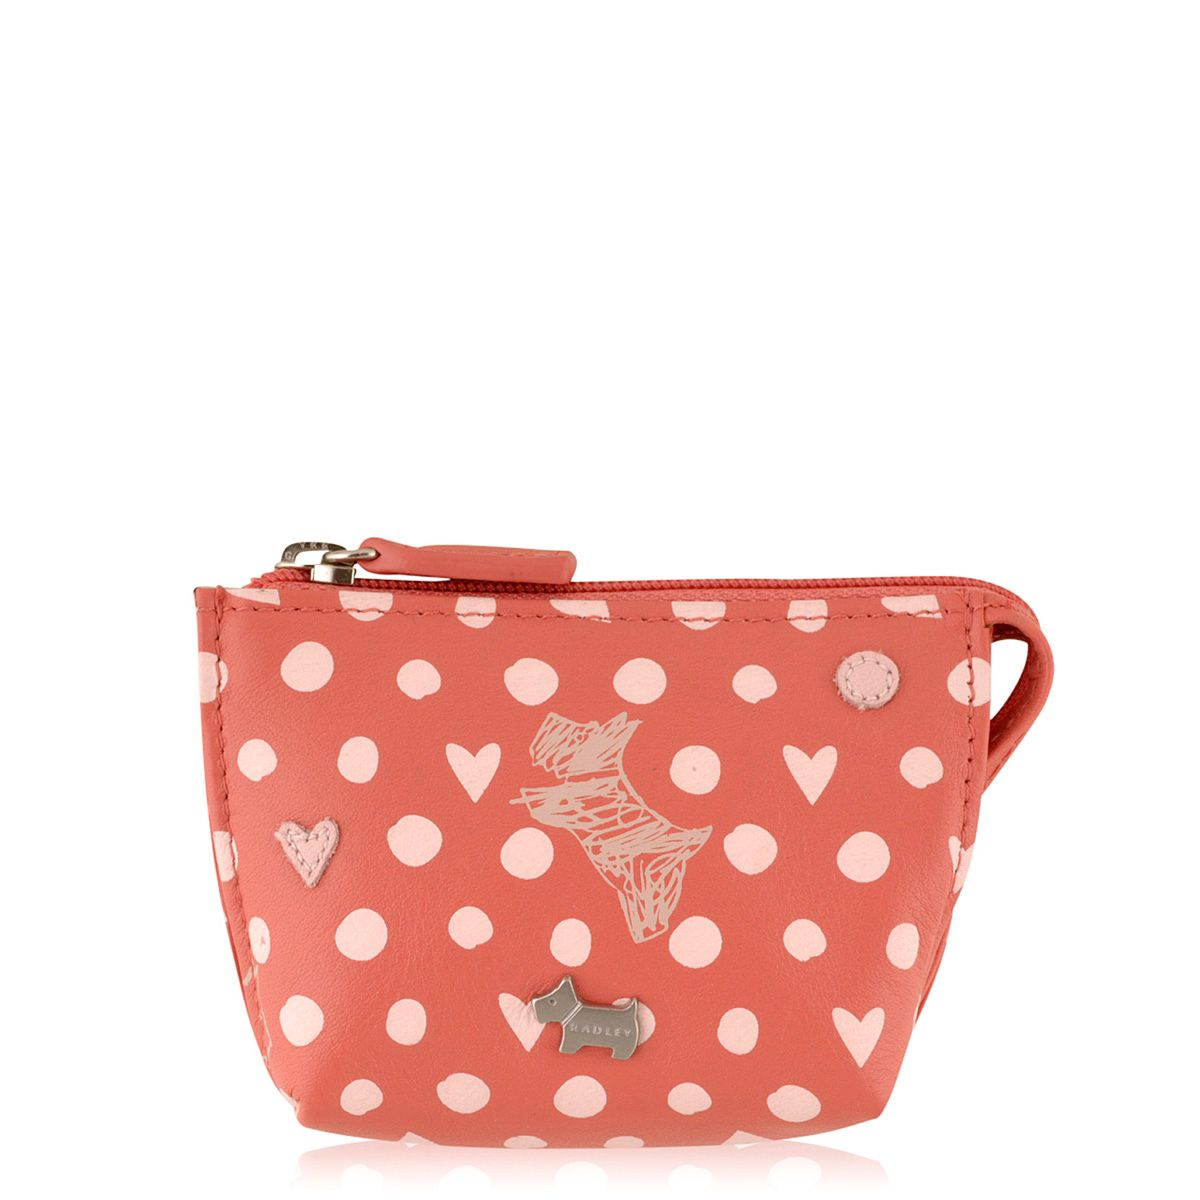 Dog and spot small coral zip top purse